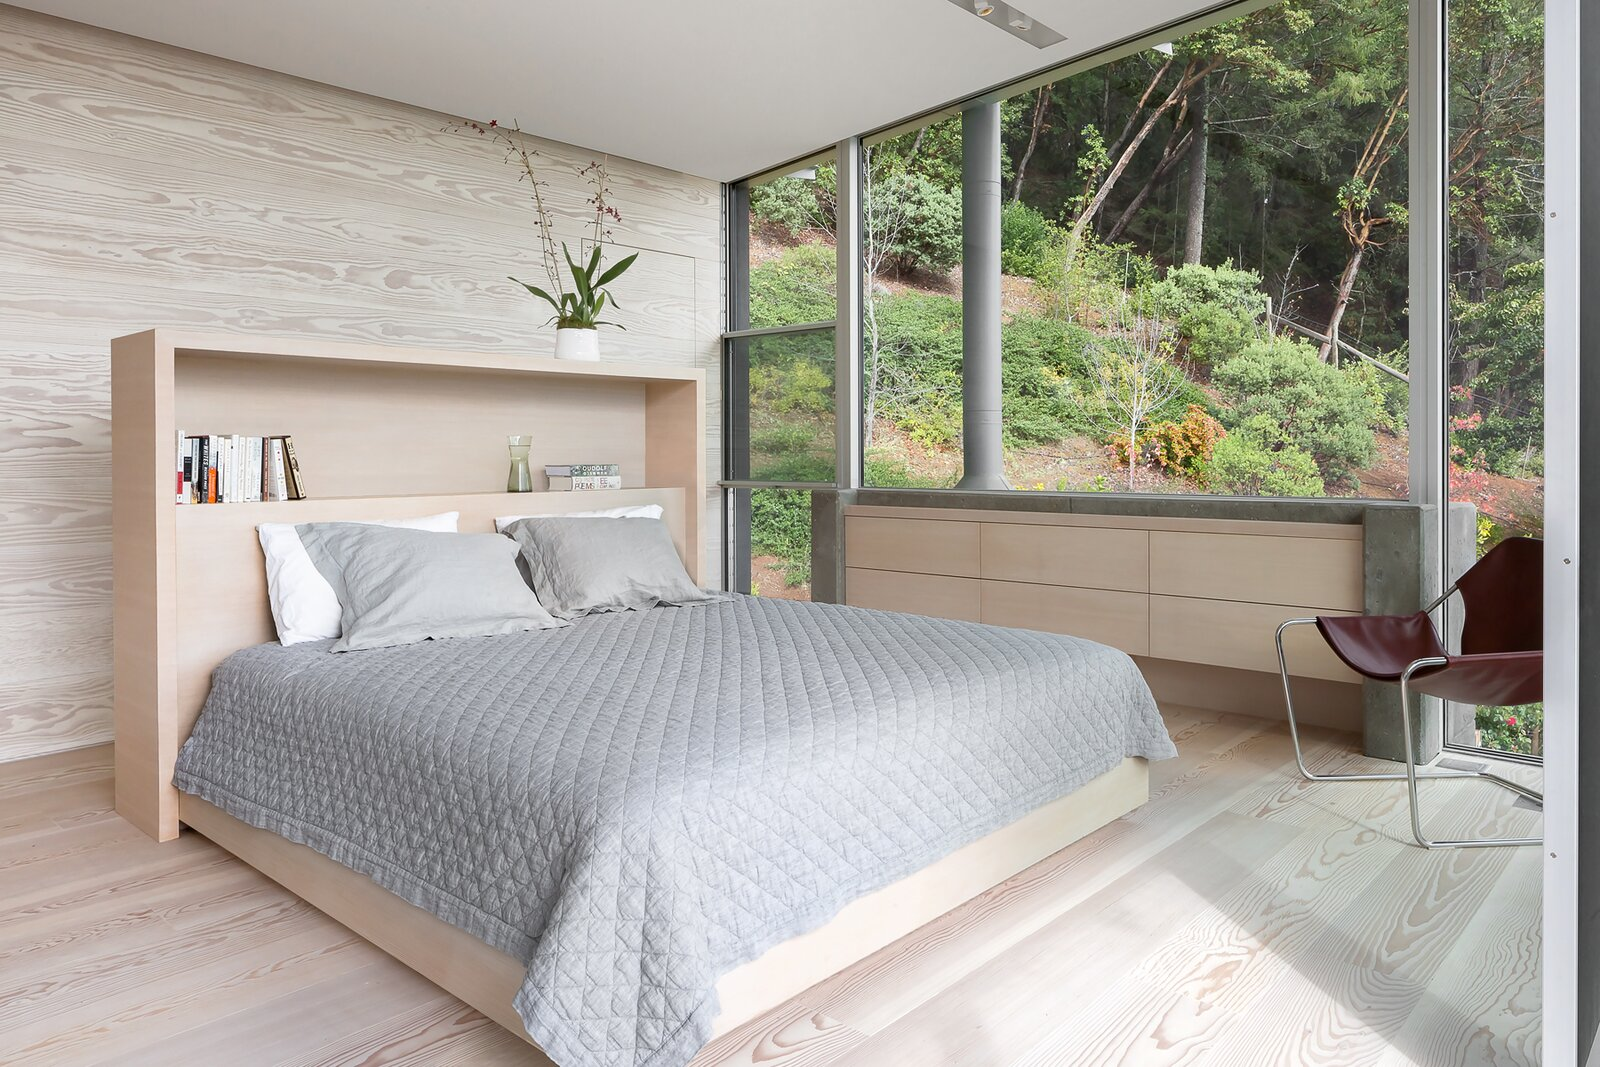 Bedroom, Light Hardwood Floor, Bed, and Dresser  Photo 10 of 11 in A Minimalist House Stands Out in a Wild Landscape from Sunrise